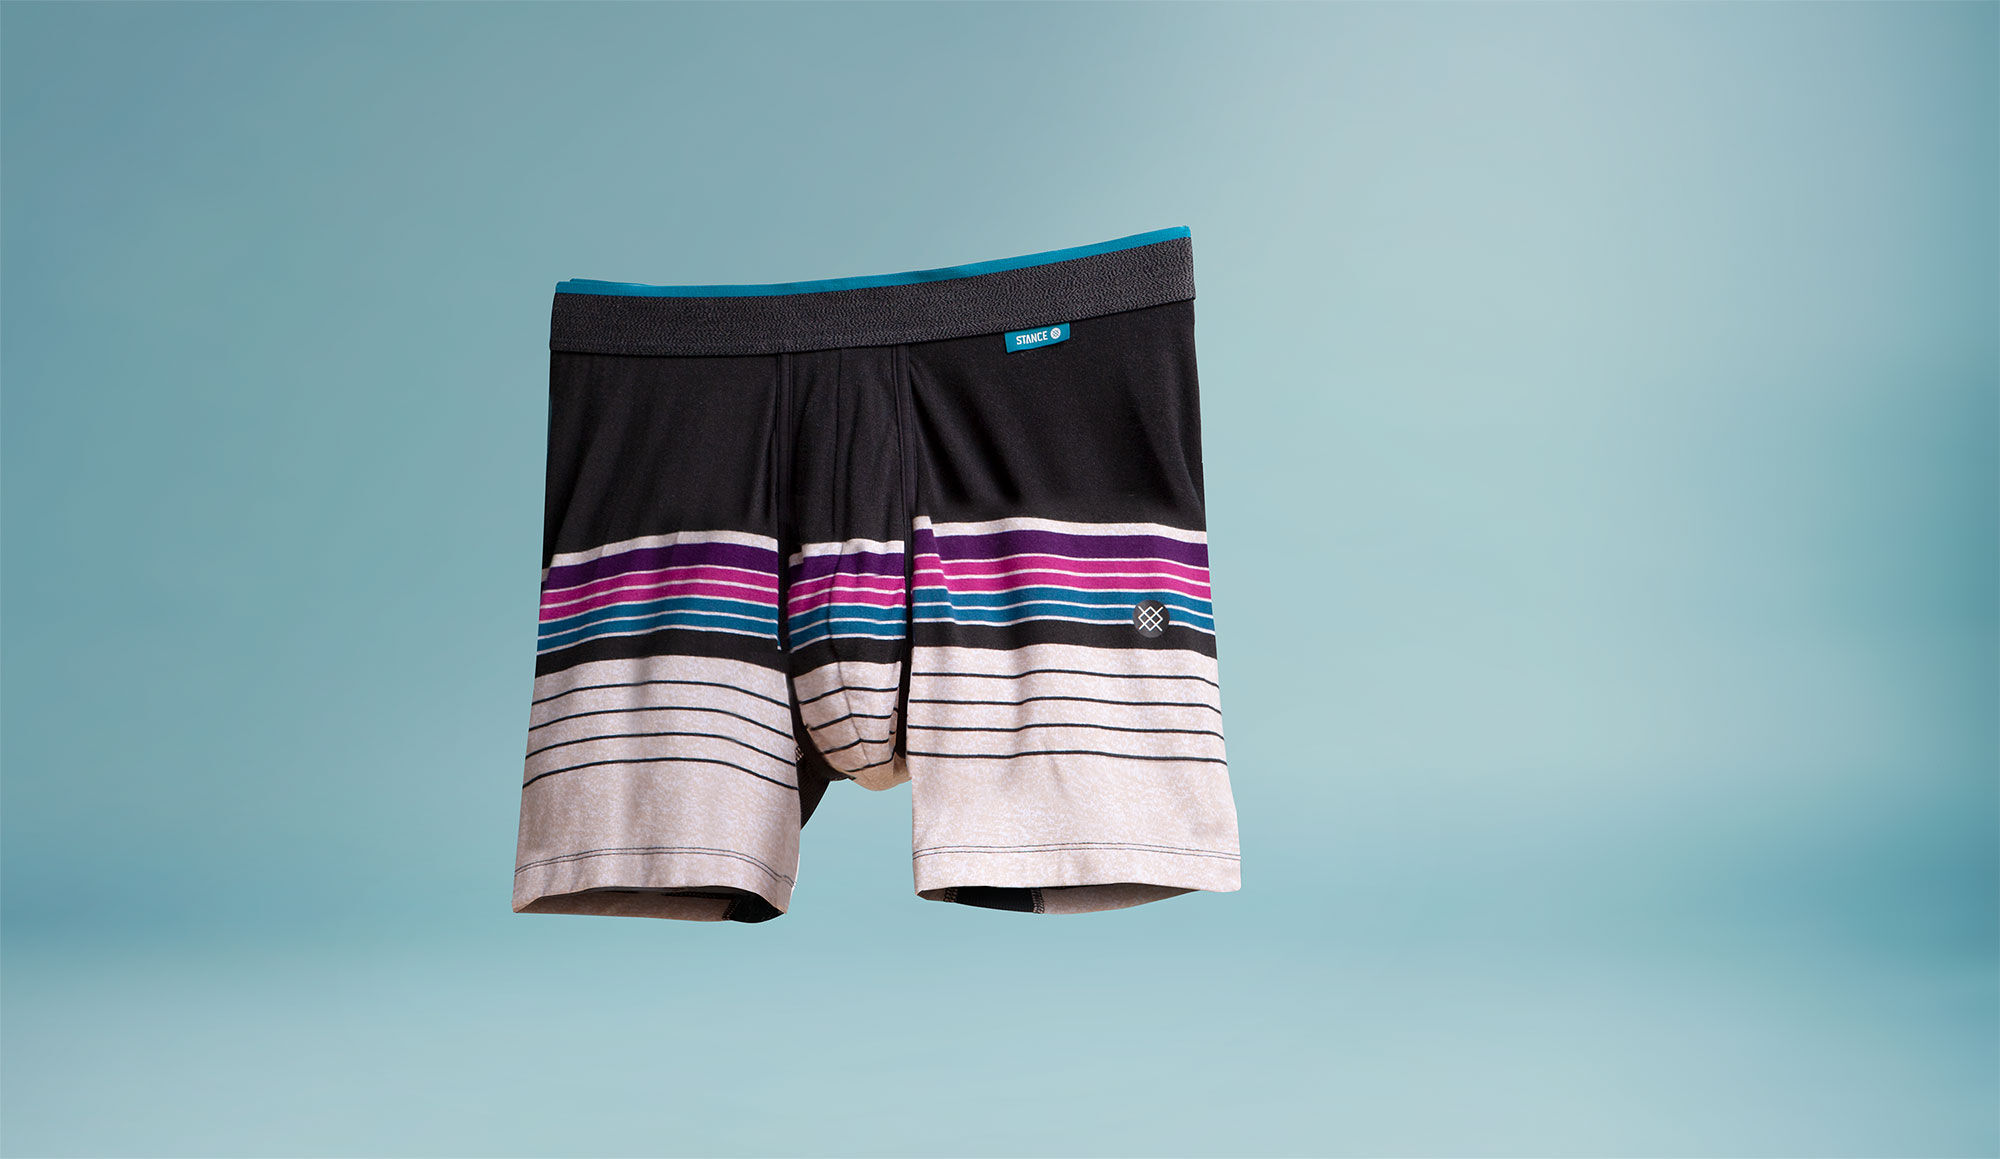 /Images/Category/MainImage/2fa7c5b0-6bca-4a61-8690-c7cf5573c8c1fa19-butterblend-mens-underwear.jpg